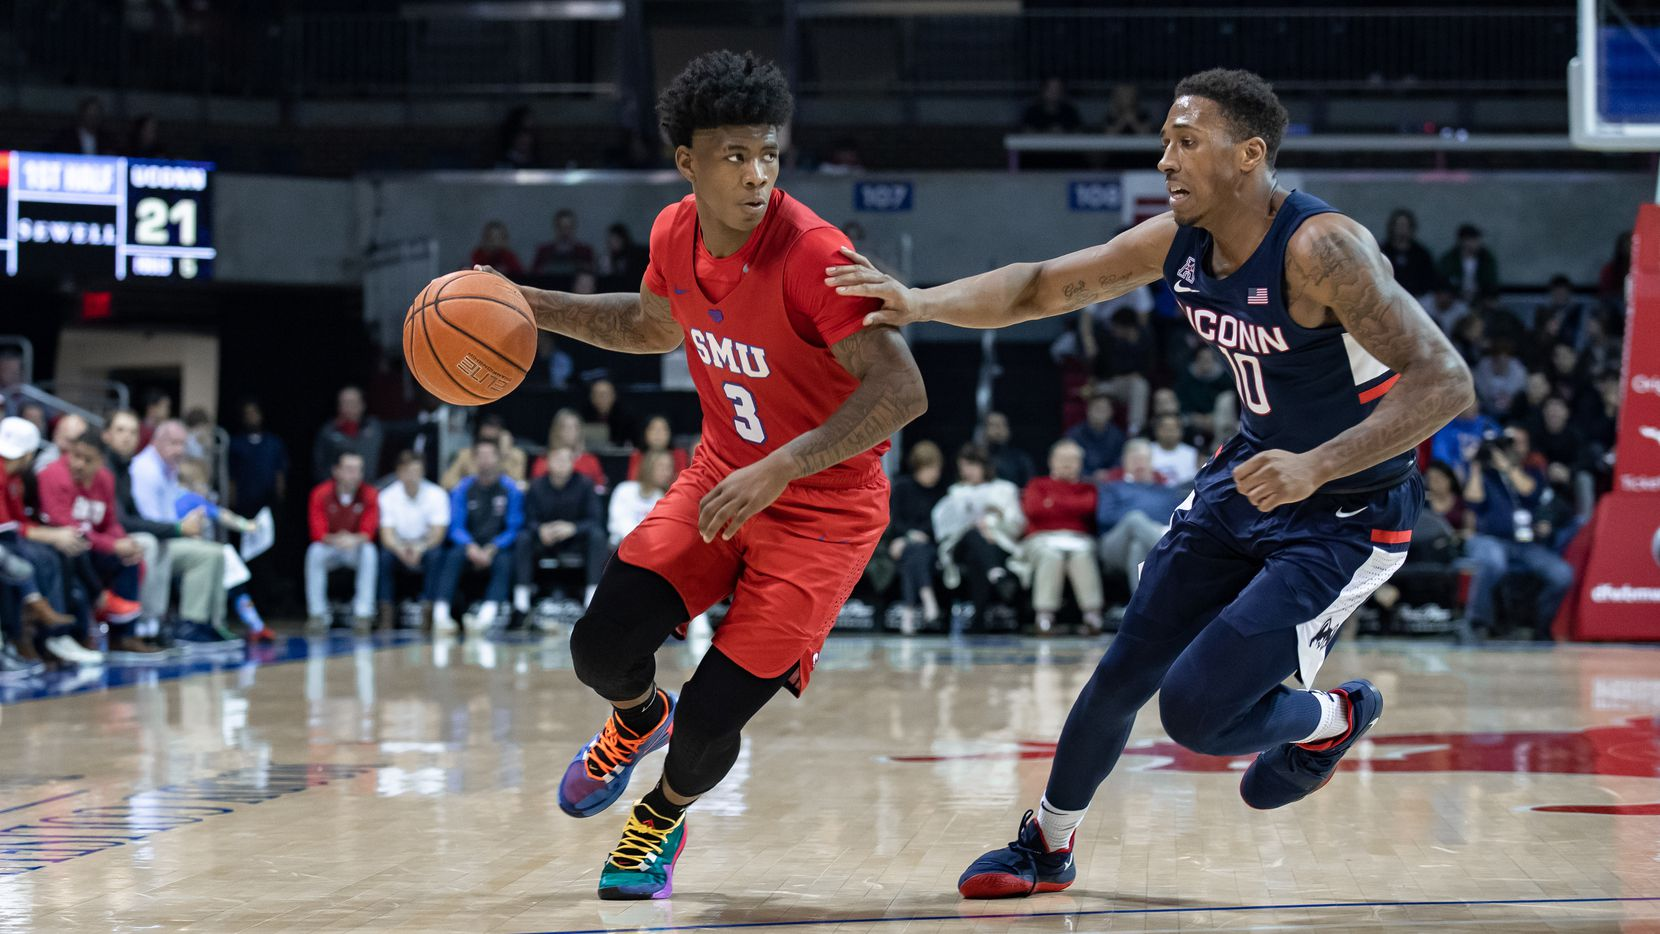 DALLAS, TX - FEBRUARY 12: SMU Mustangs guard Kendric Davis (#3) dribbles up court as UConn Huskies guard Brendan Adams (#10) defends during the American Athletic Conference college basketball game between the SMU Mustangs and the UConn Huskies on February 12, 2020 at Moody Coliseum in Dallas, Texas.  (Photo by Matthew Visinsky/Icon Sportswire via Getty Images)